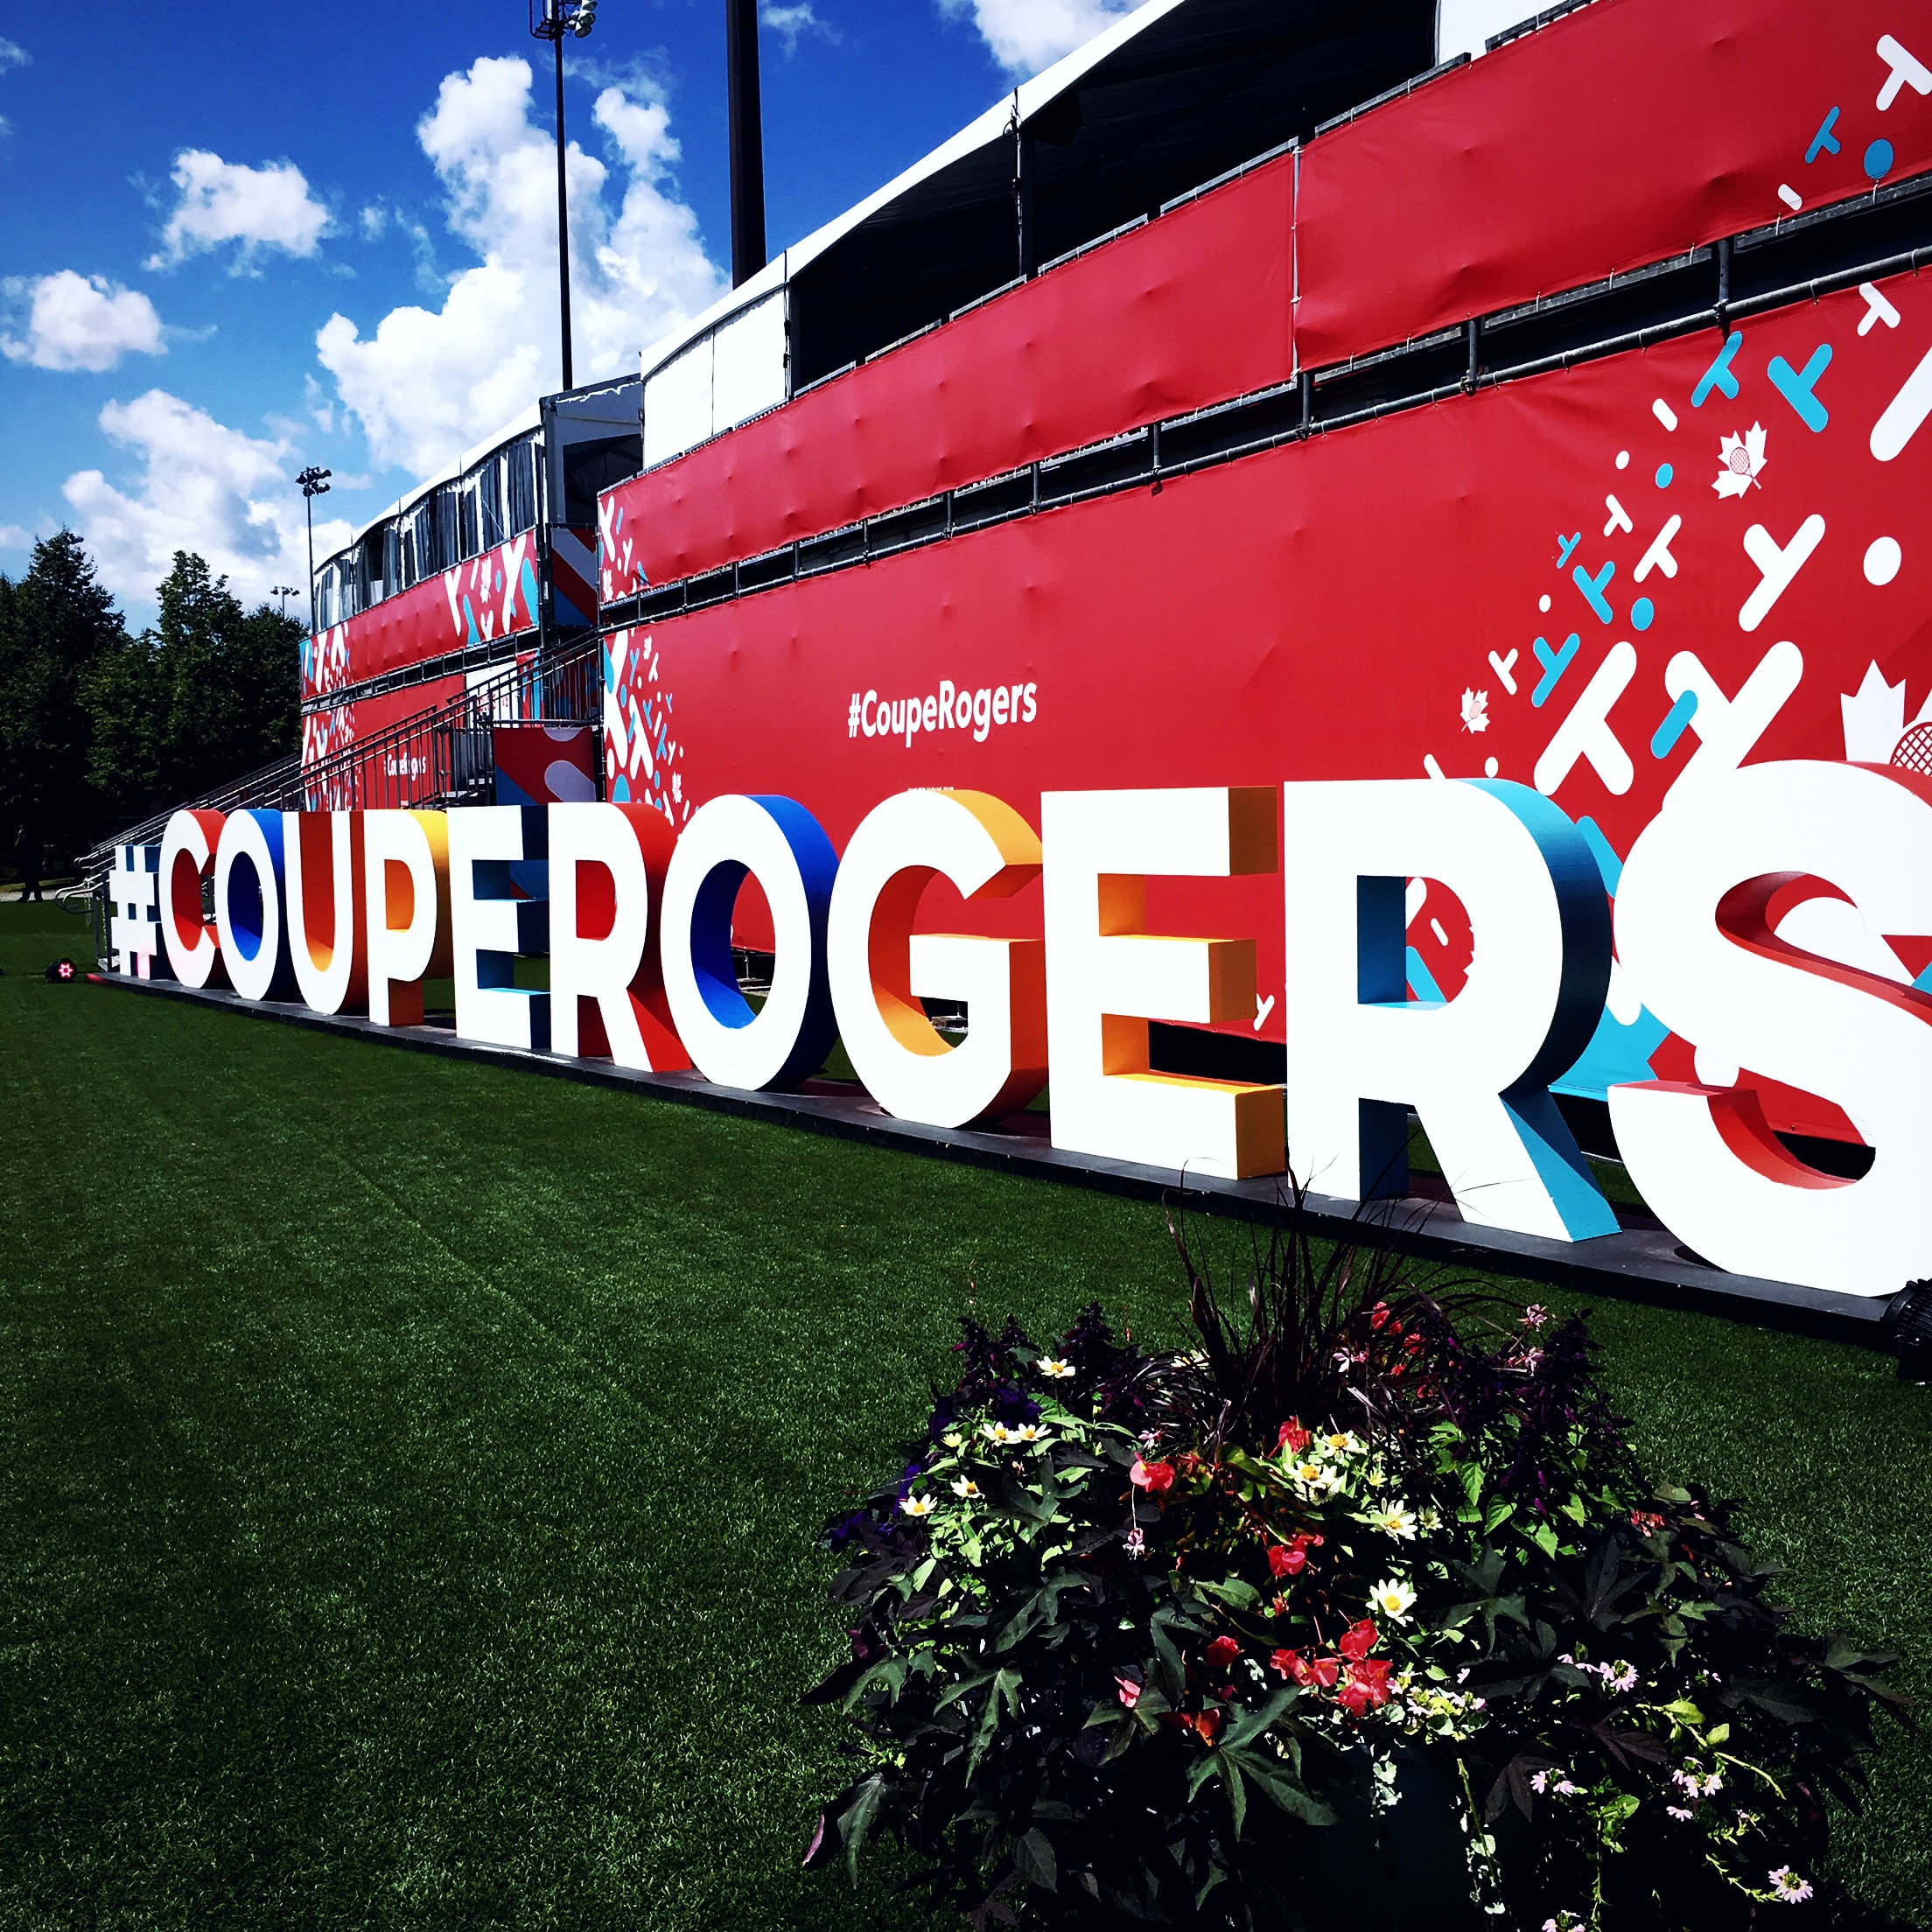 Tennis fever @therogerscup